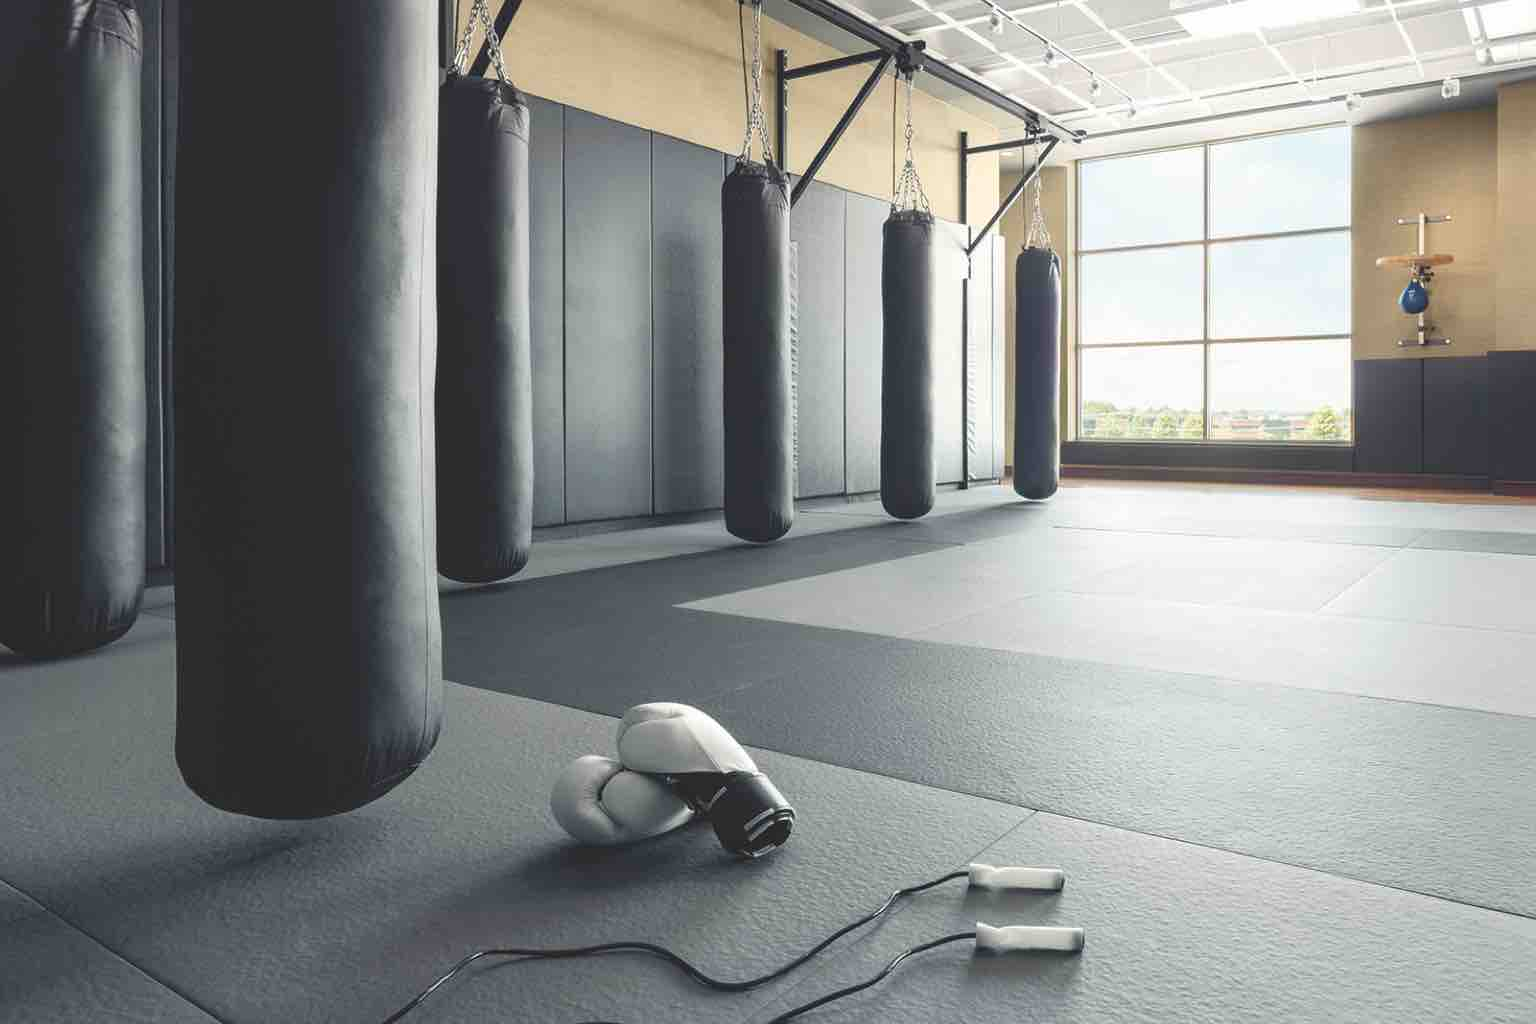 Designed for boxing, this sunlit gym space has padded walls and contains several heavy bags